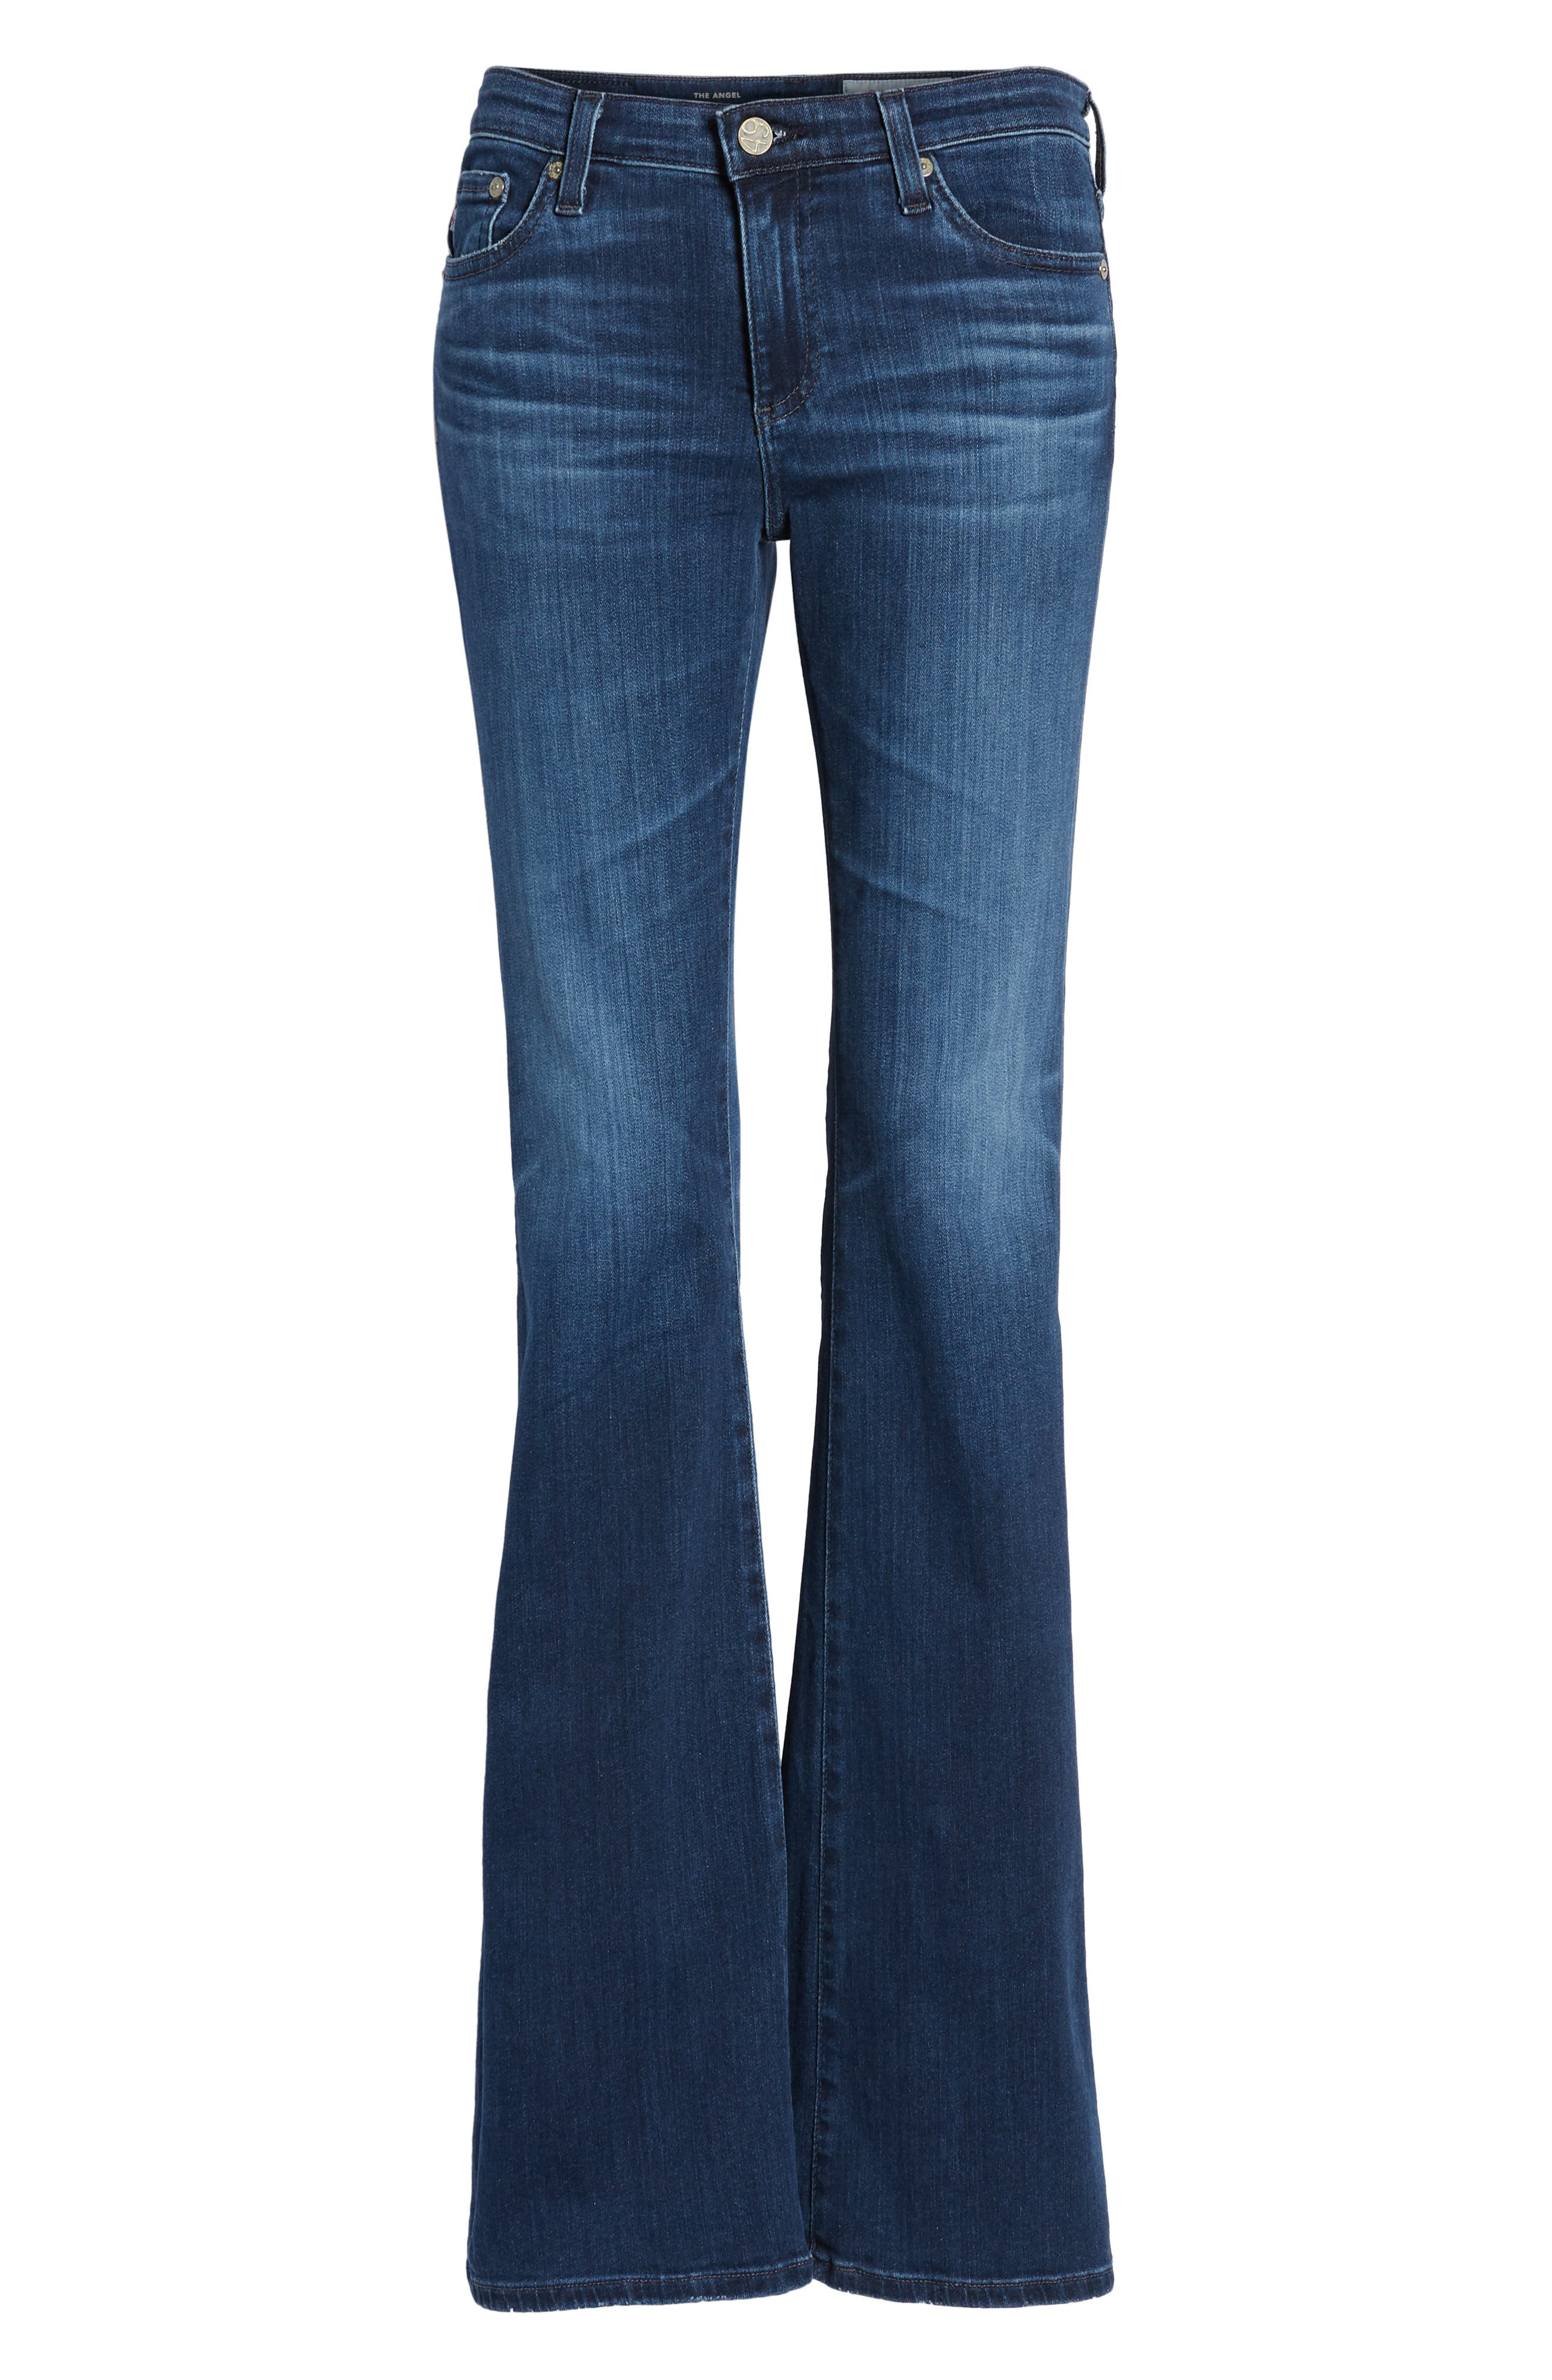 Angel Bootcut Jeans,                             Alternate thumbnail 7, color,                             05 YEAR BLUE ESSENCE